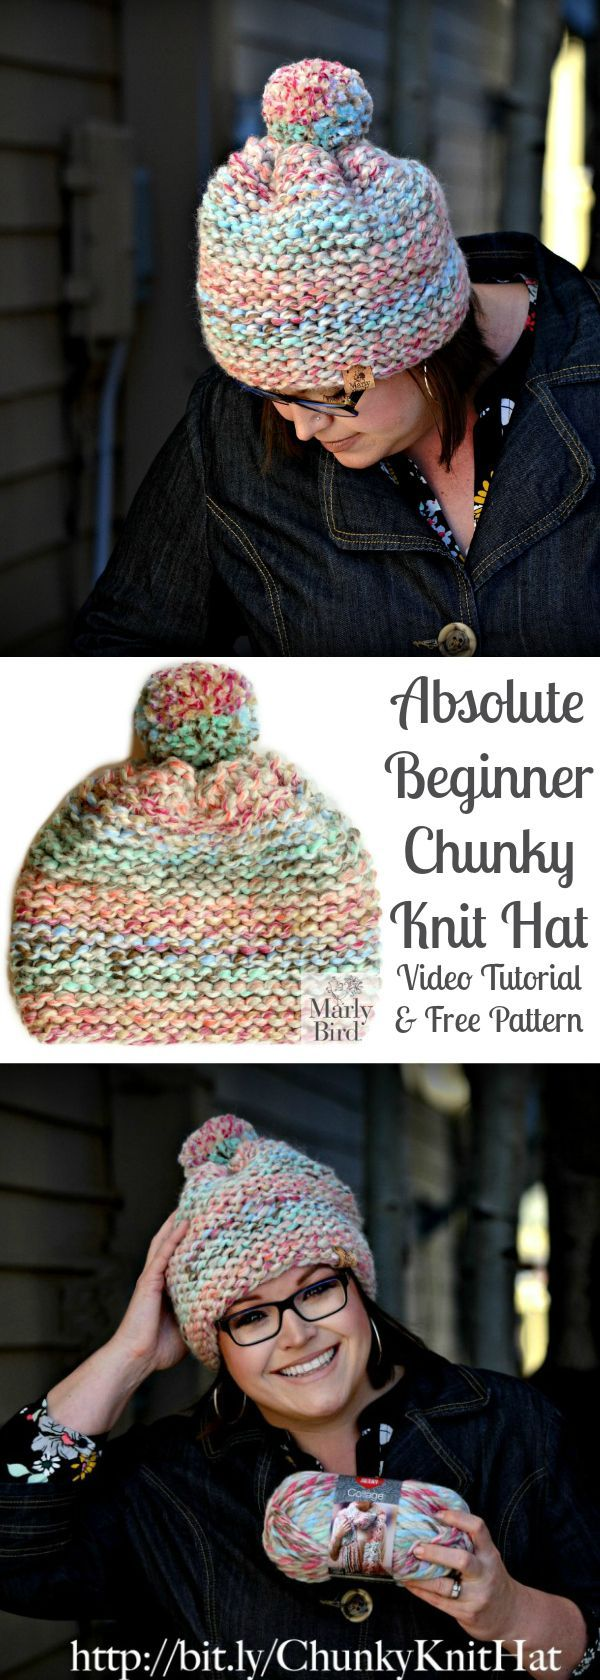 Absolute Beginner Chunky Knit Hat (With images) | Chunky ...